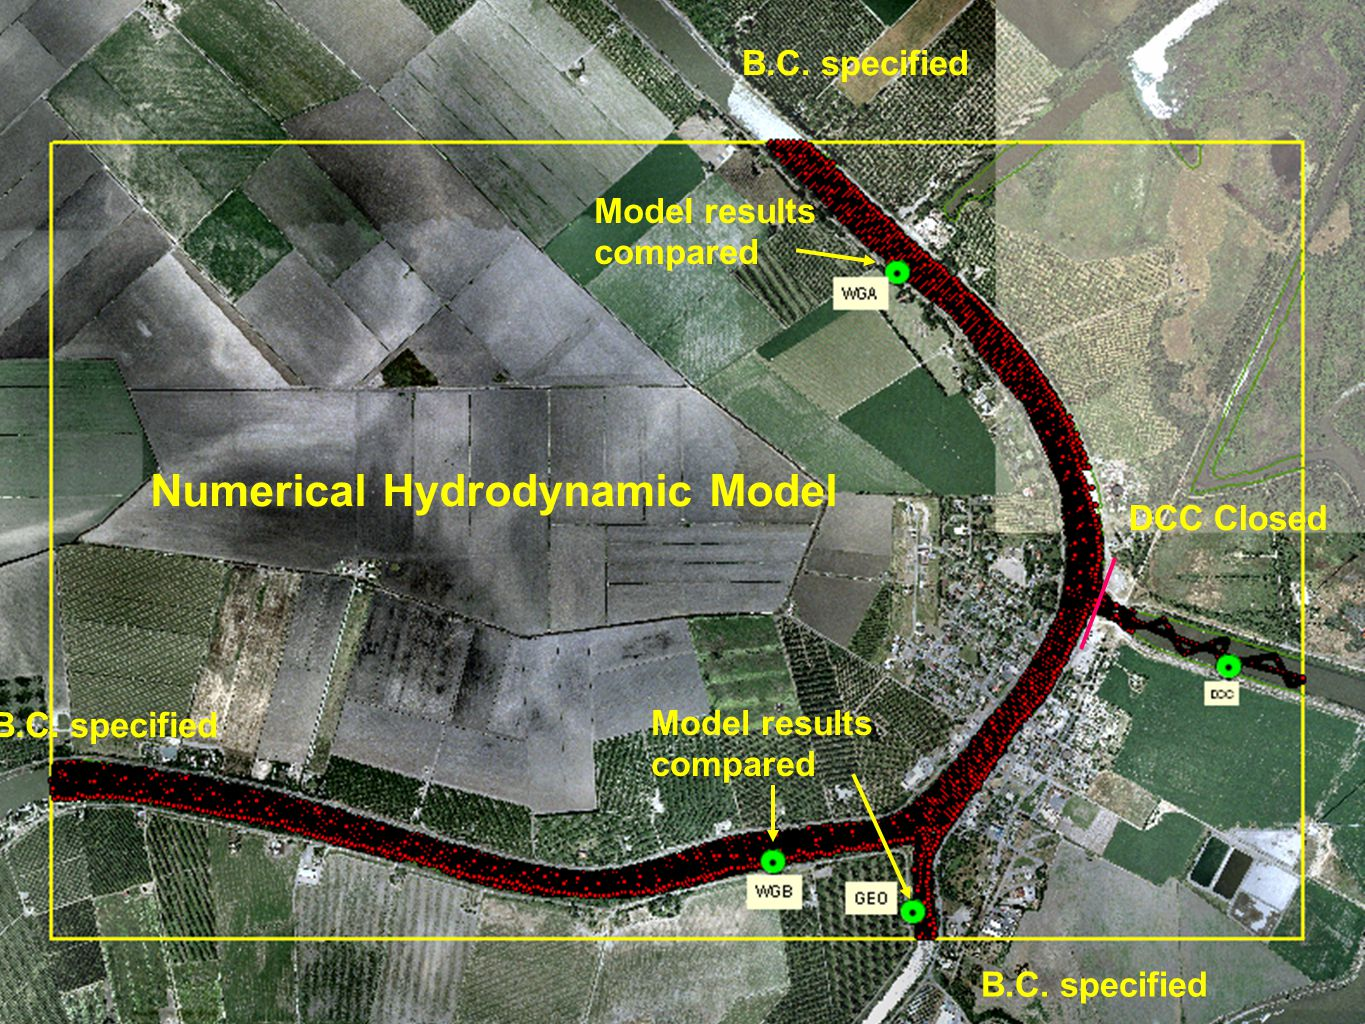 Numerical Hydrodynamic Model